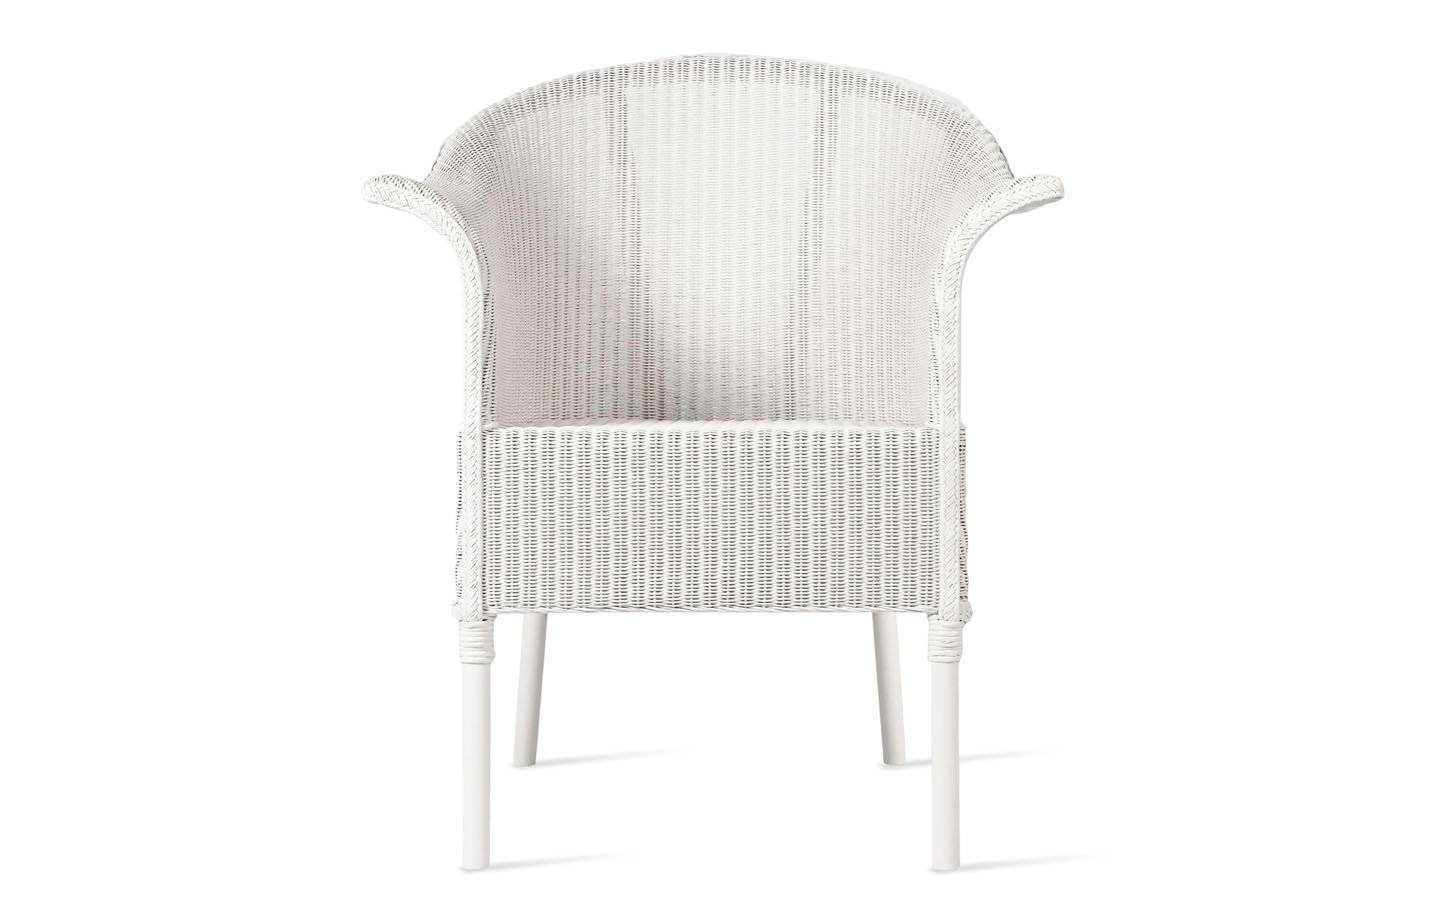 Vincent Monte Carlo Lloyd Loom Outdoor Dining Chair by Vincent Sheppard Oyster Zinc